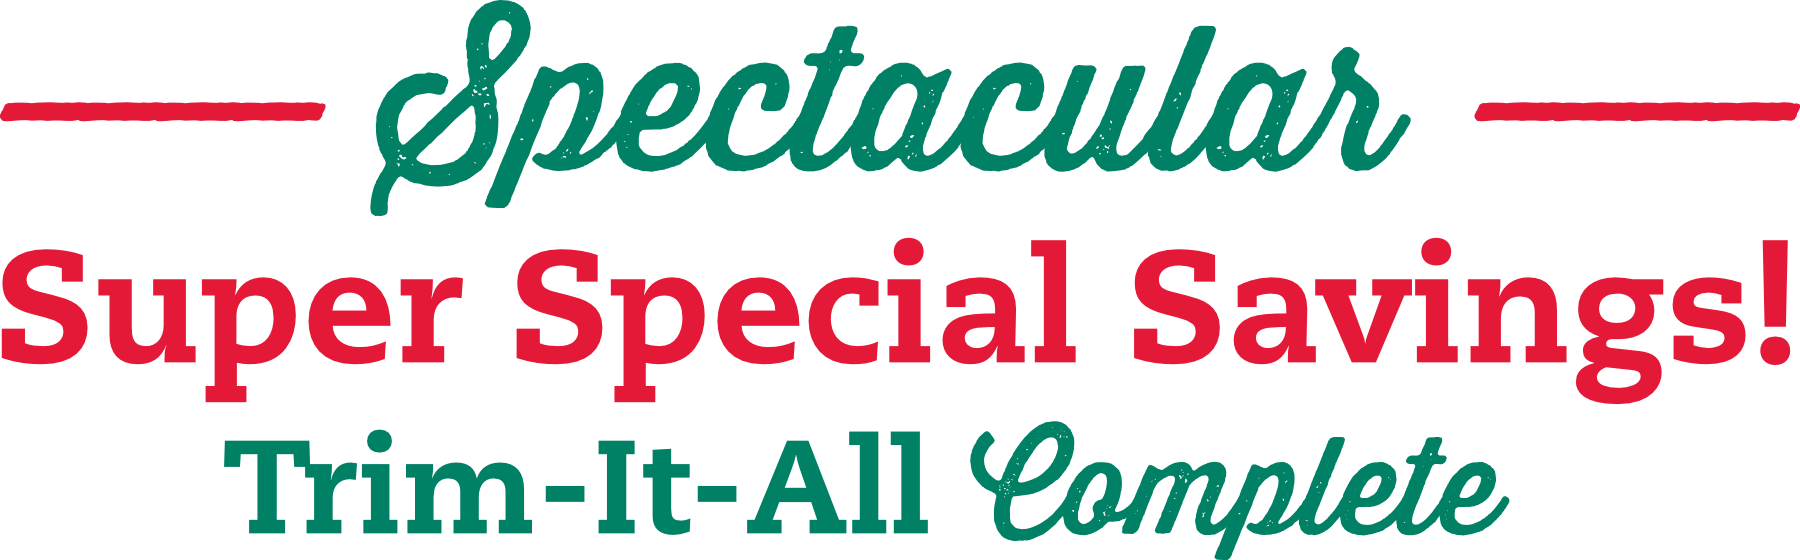 Spectacular Super Special Savings